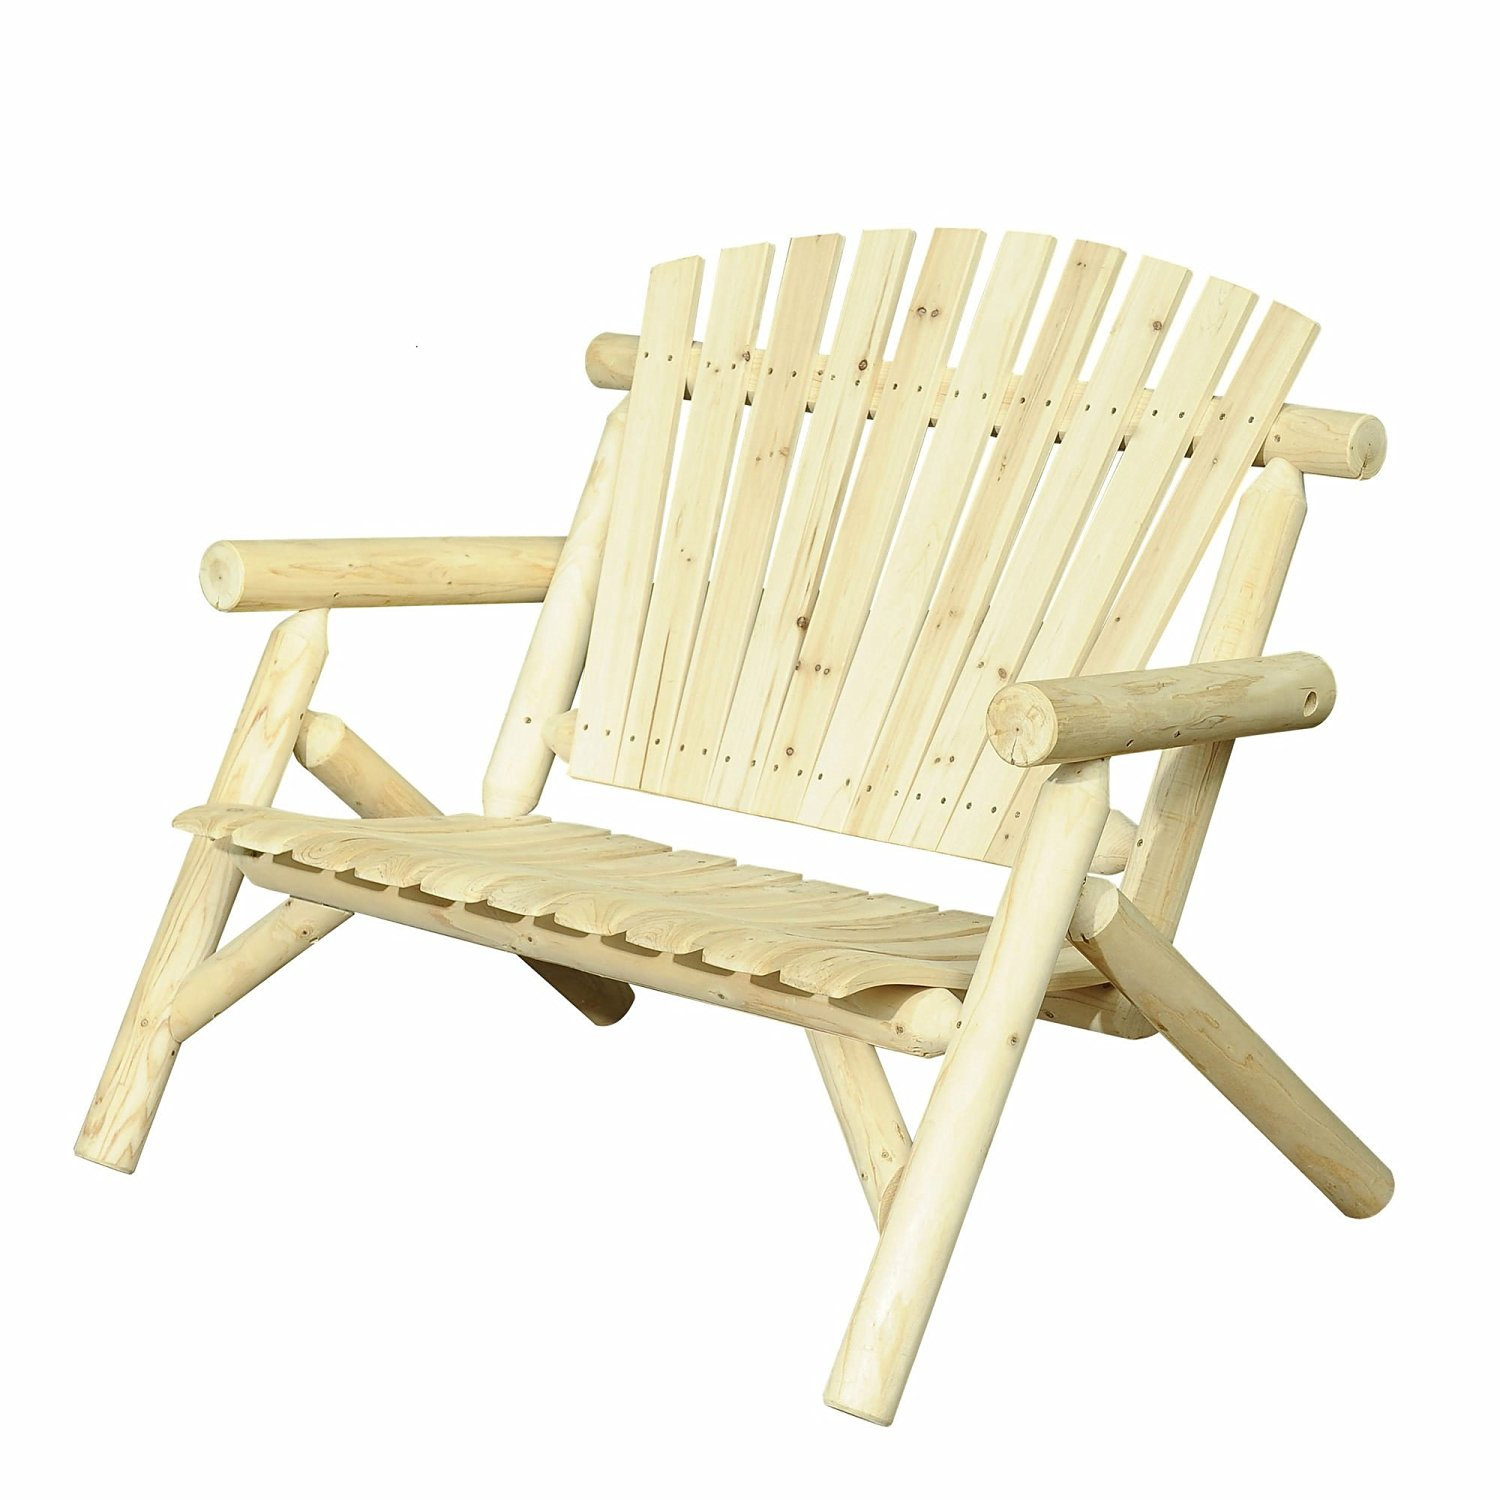 ... Patio Chairs In Wood, Bench Chair As Garden Furniture,Lawn Chair,Patio  Furniture